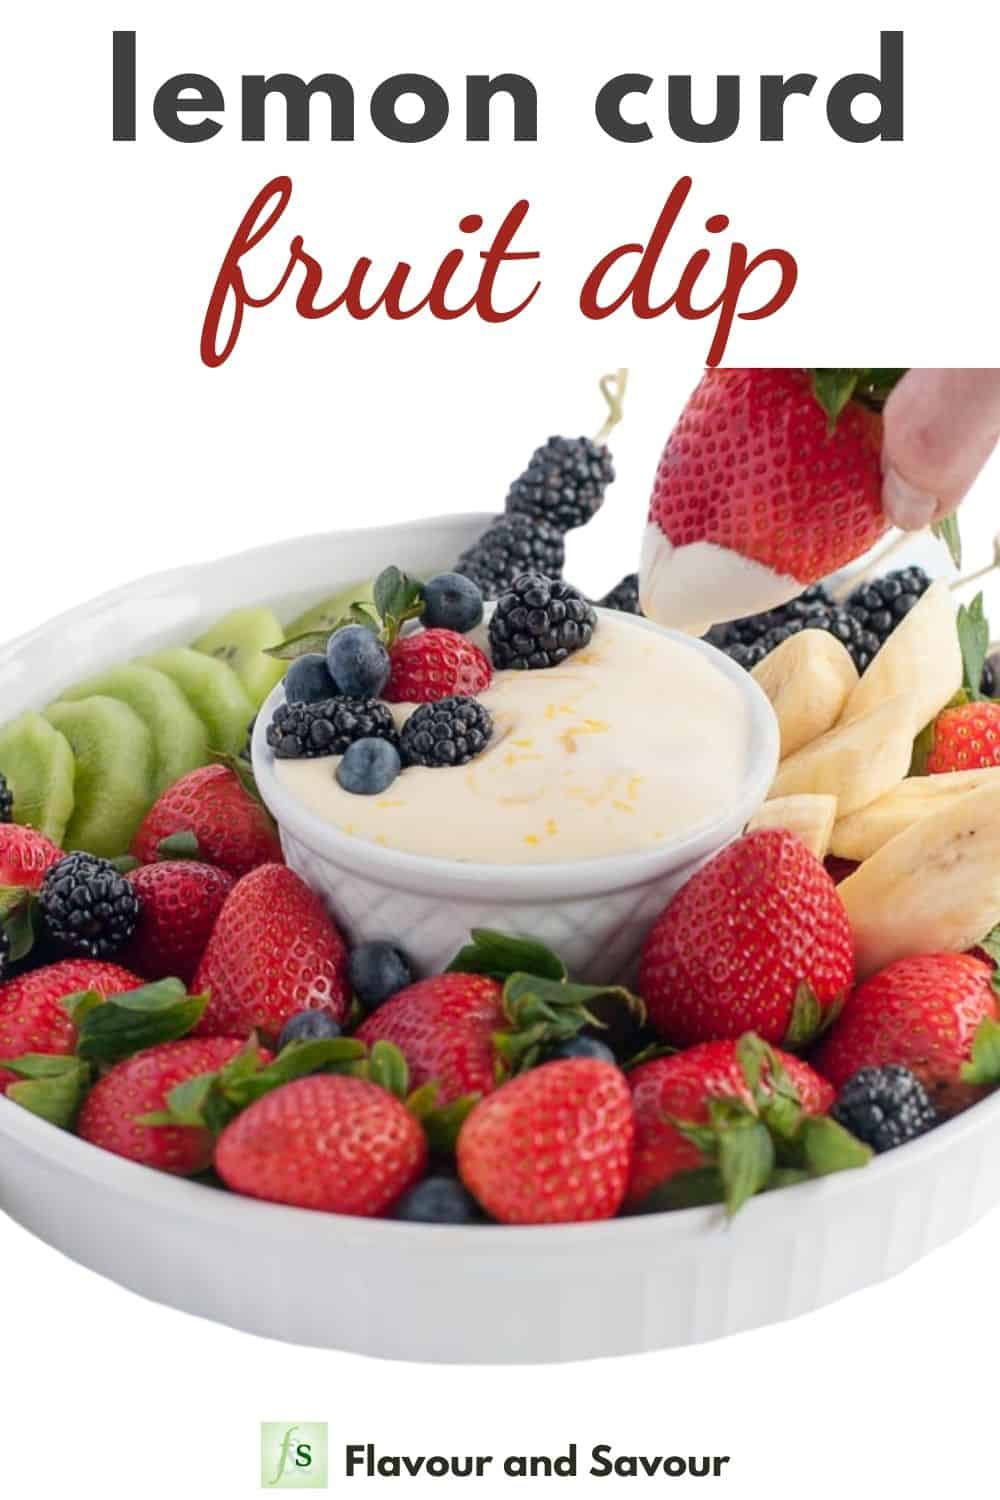 Lemon Curd Fruit Dip Pinterest image with text overlay